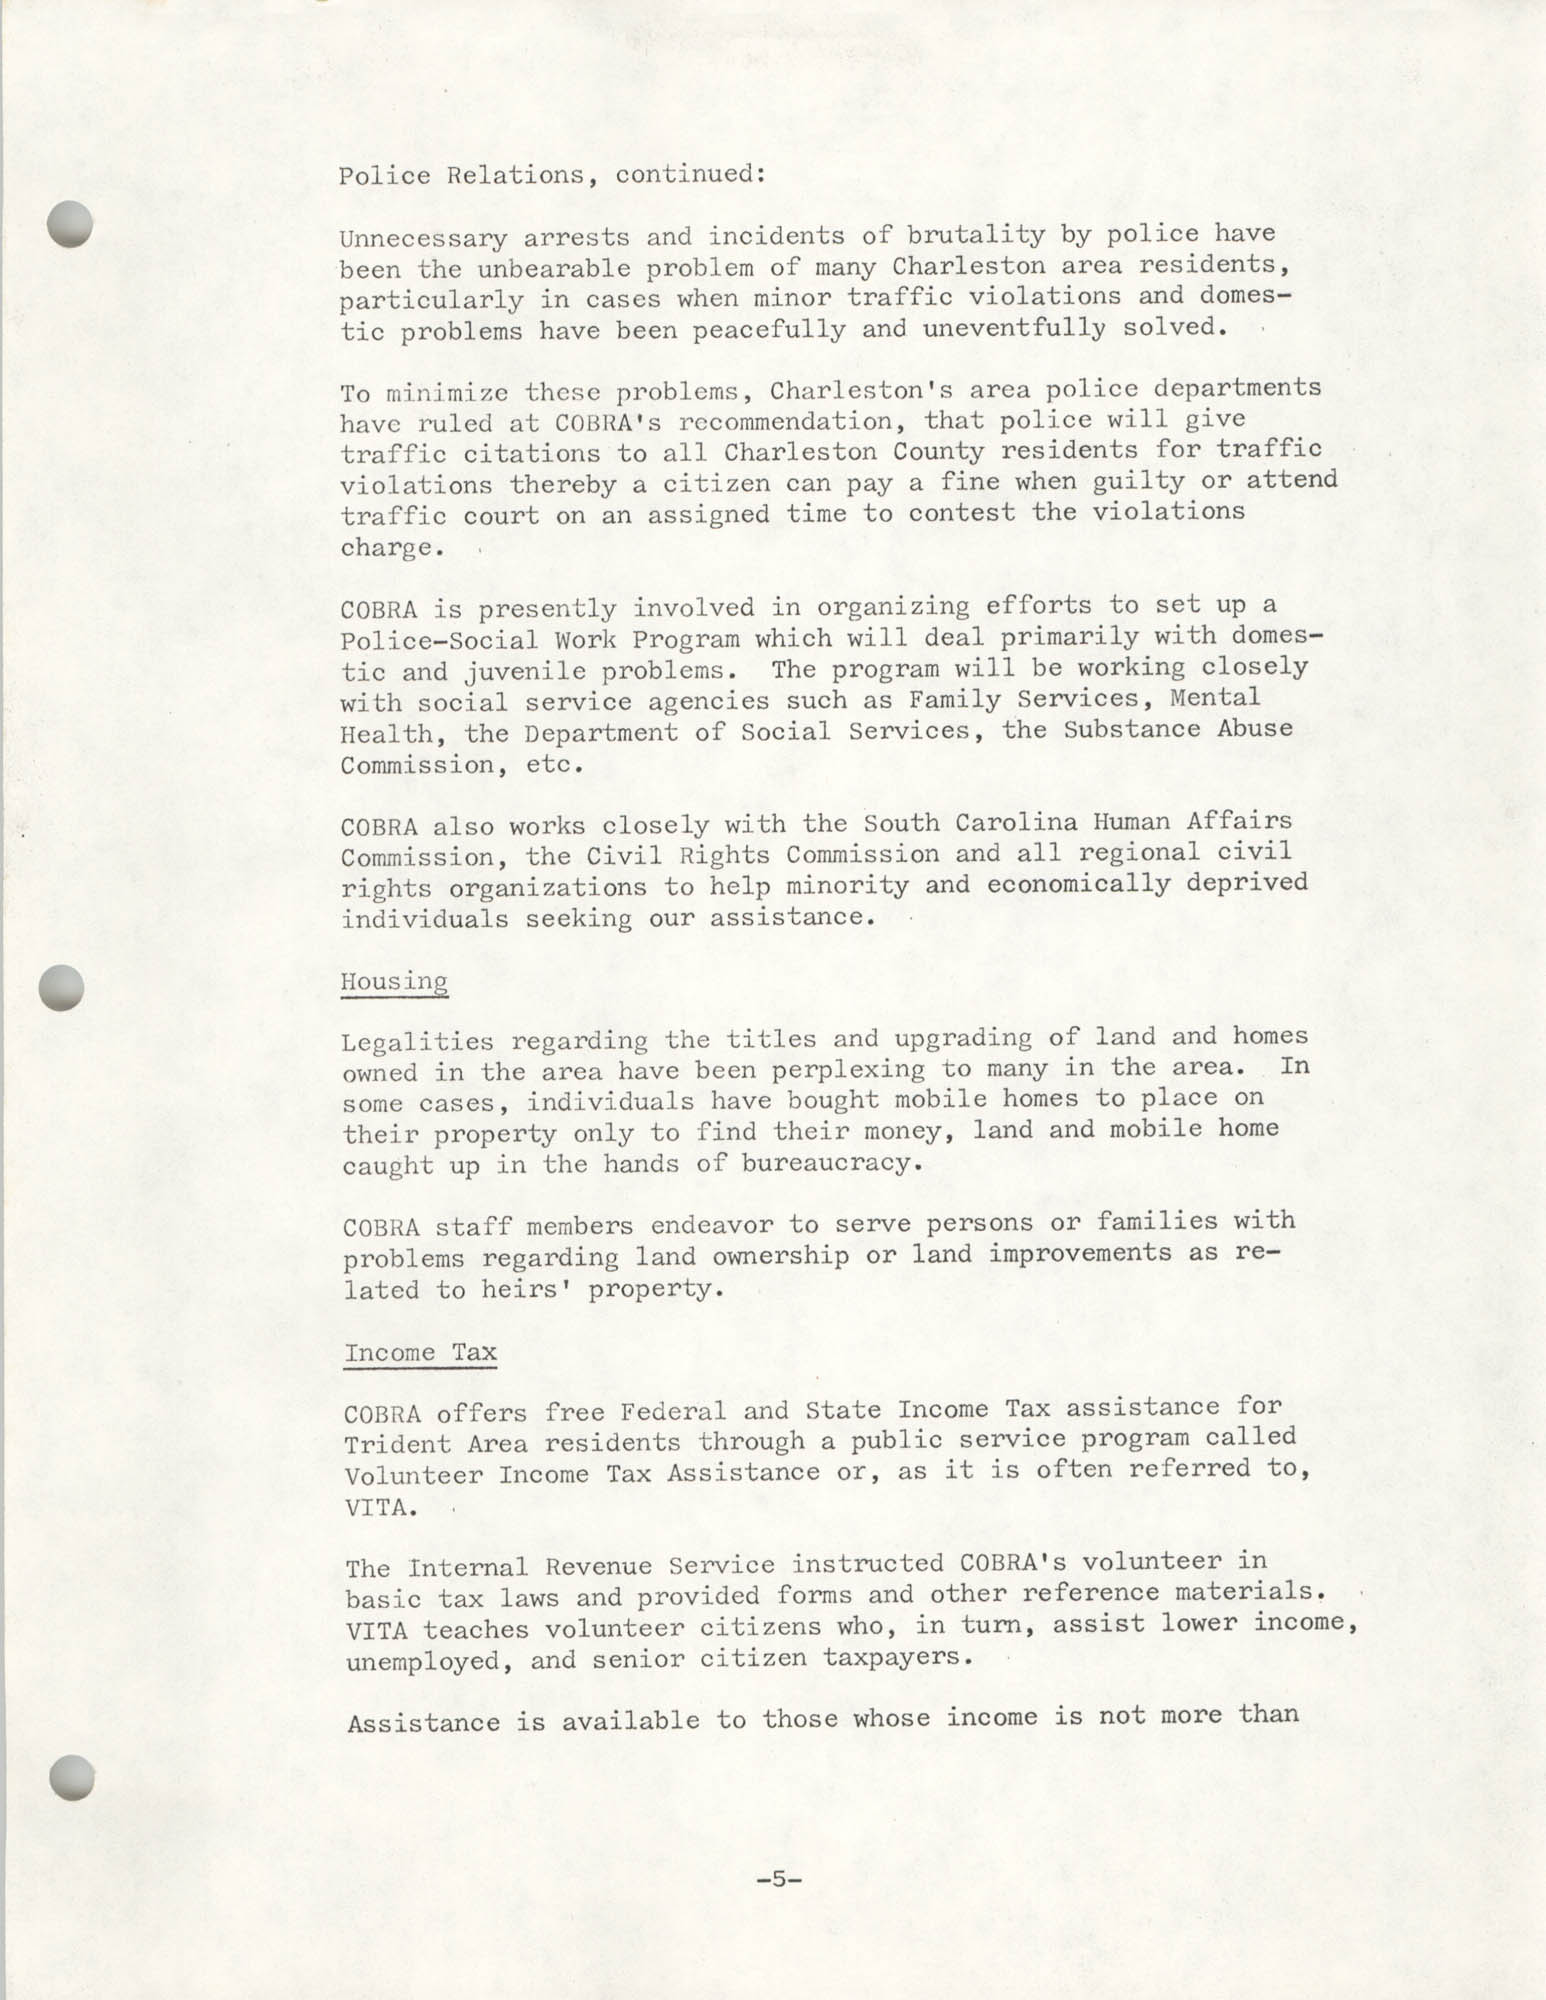 Organizational Information for COBRA, Page 5